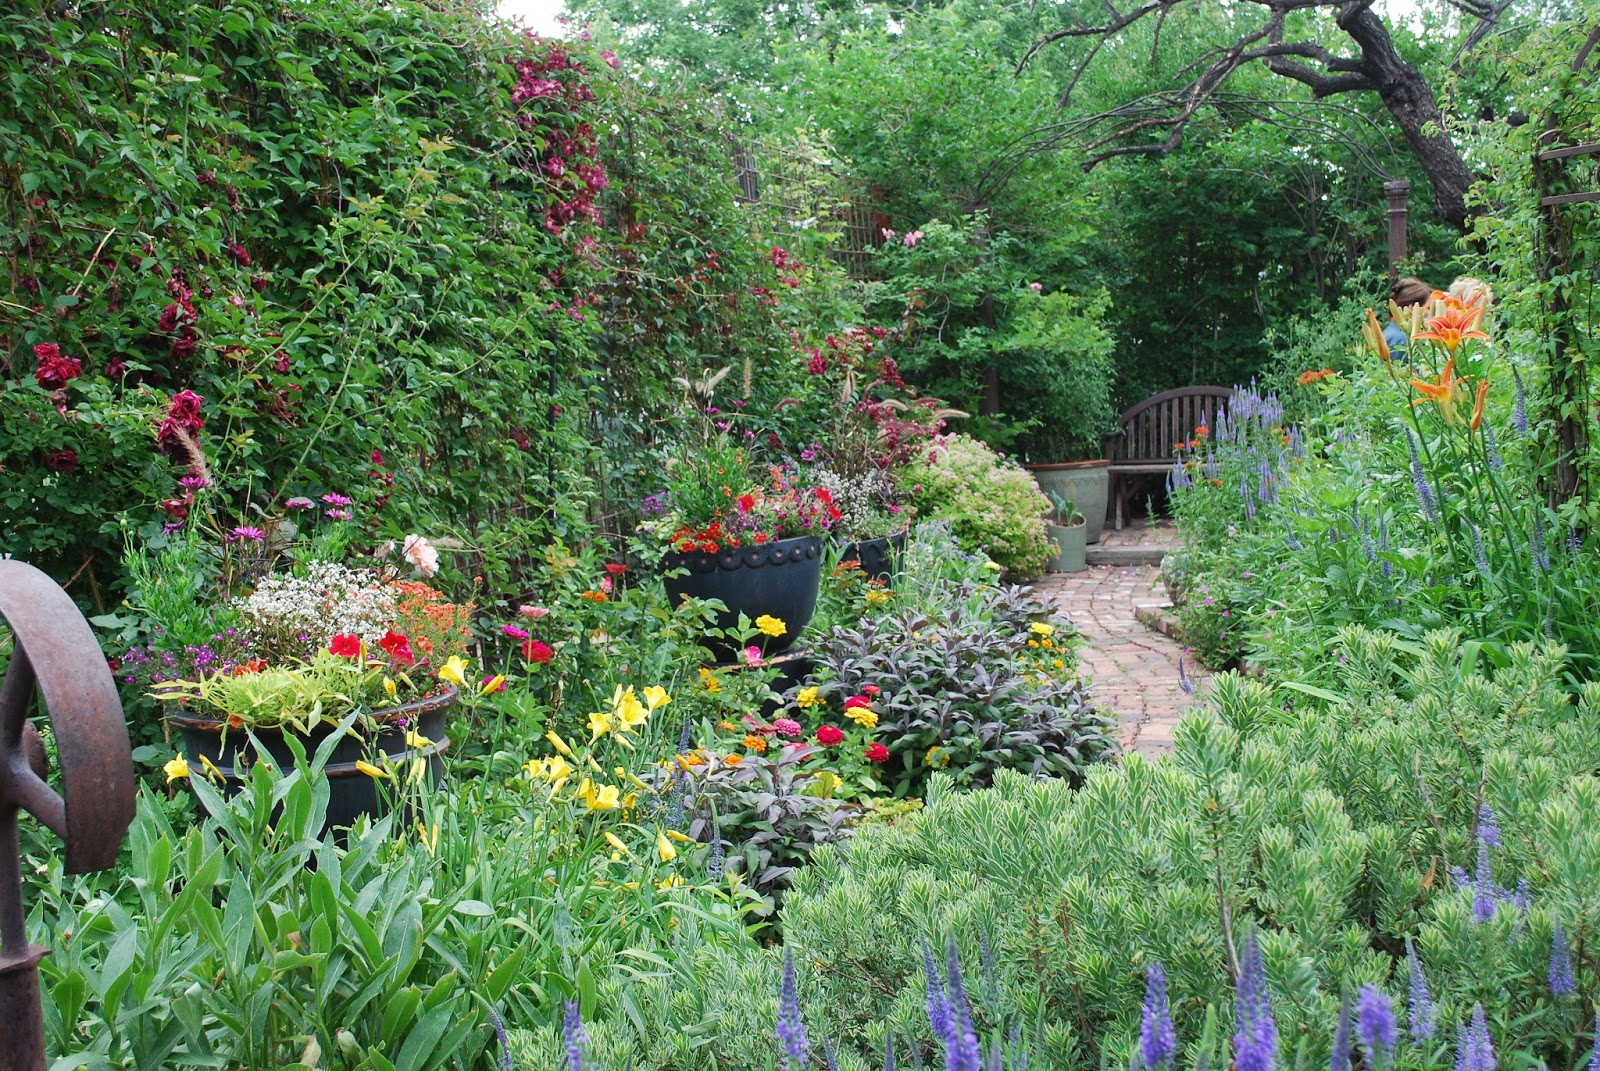 Garden Tour Season Is Upon Us And One Of My Perennial Favorites The Enchanted Gardens Northwest Denver A Benefit For Conflict Center